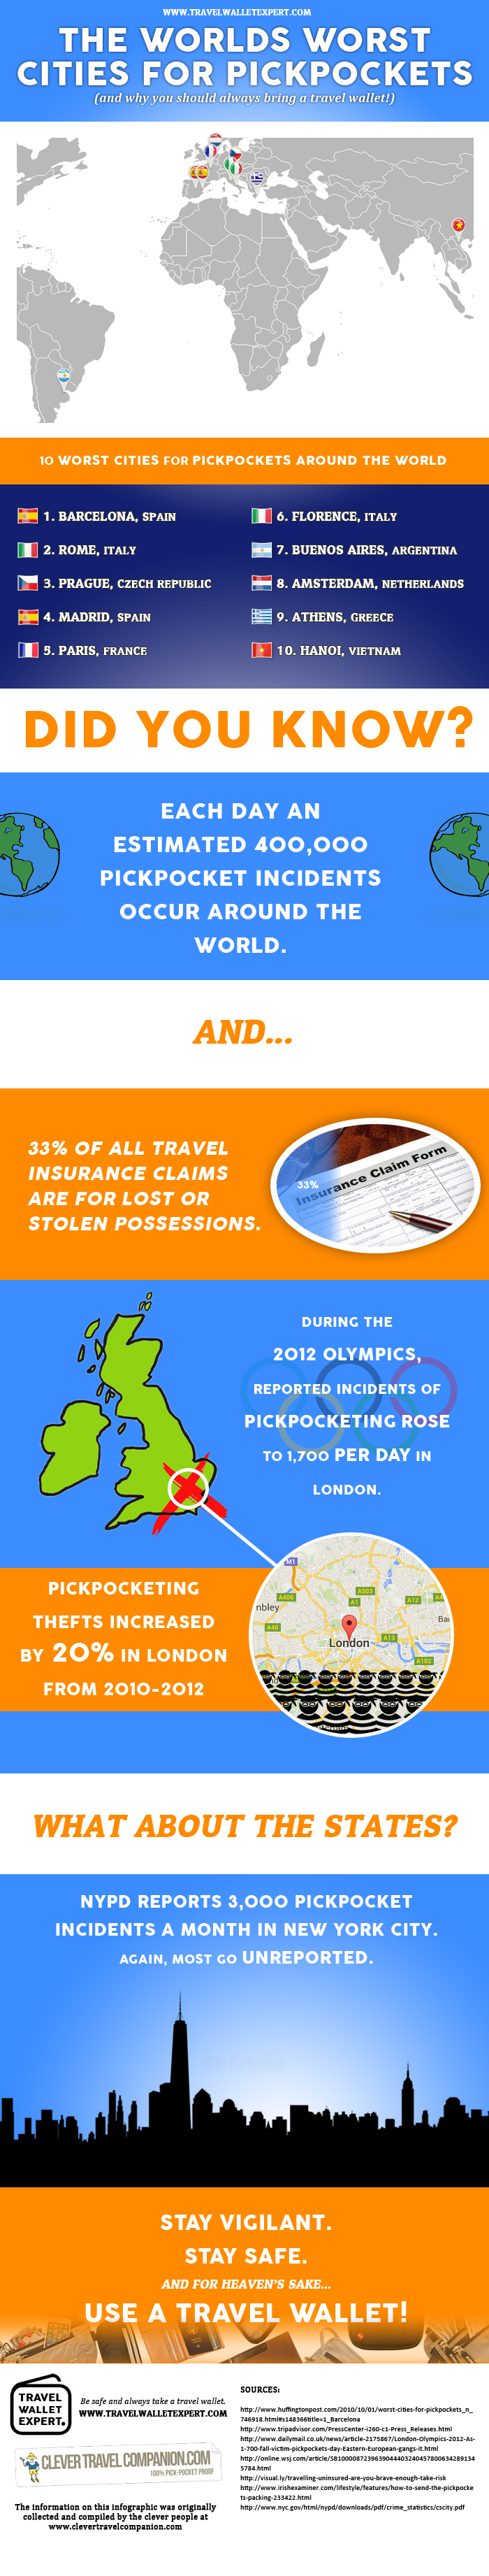 The worlds worst cities for pickpockets